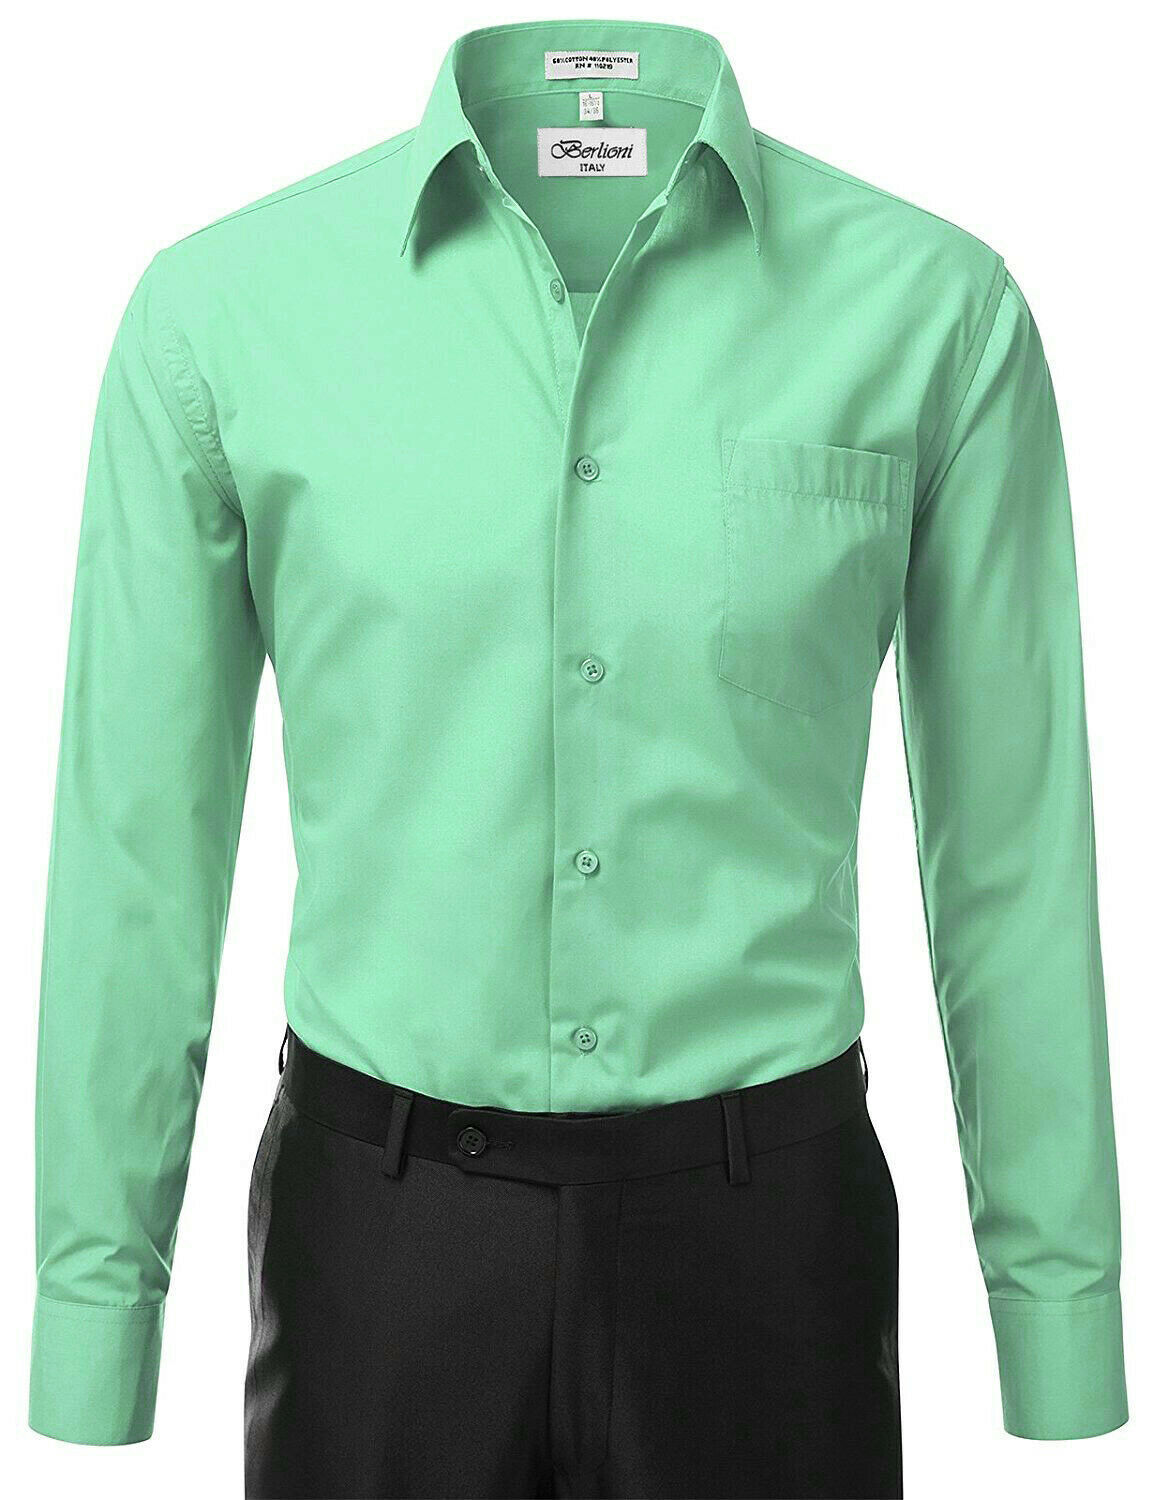 Berlioni Italy Men Mint Classic French Convertible Cuff Solid Dress Shirt - XL